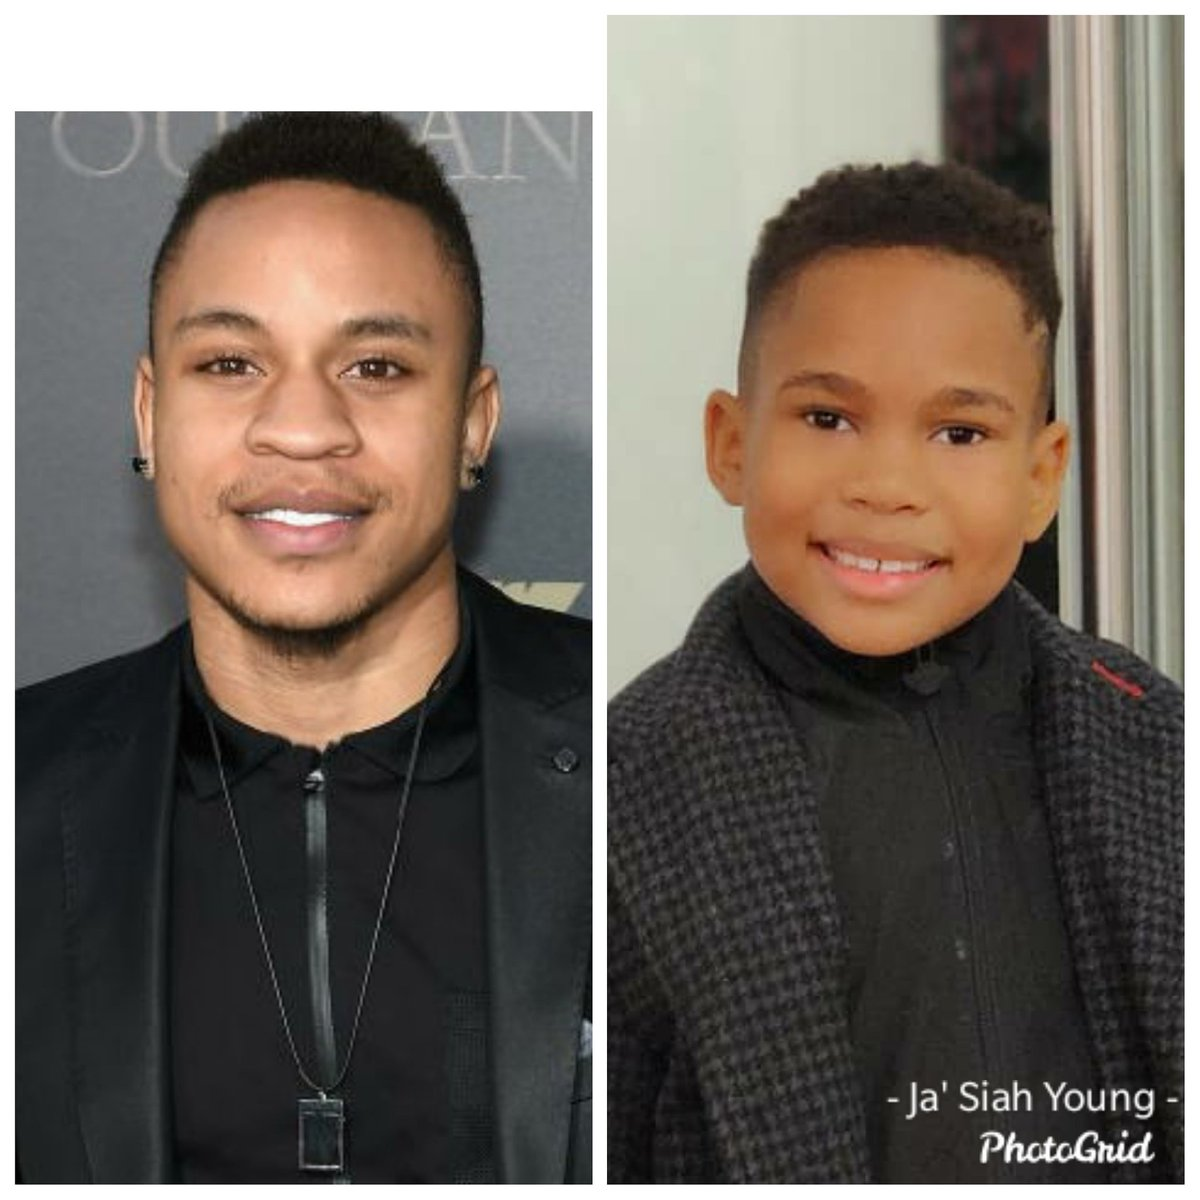 So guys my uncle @therealbigpa seems to think I look a lot  like @rotimi  AKA #Dre from @power_starz what do you guys think? 😜😎 Could we be doppelganger? @starz @50cent  #raisingdion  #netflix #jasiahyoungofficial  #dion #gq #suave #coach #coachella  #tommyhilfiger  #essence